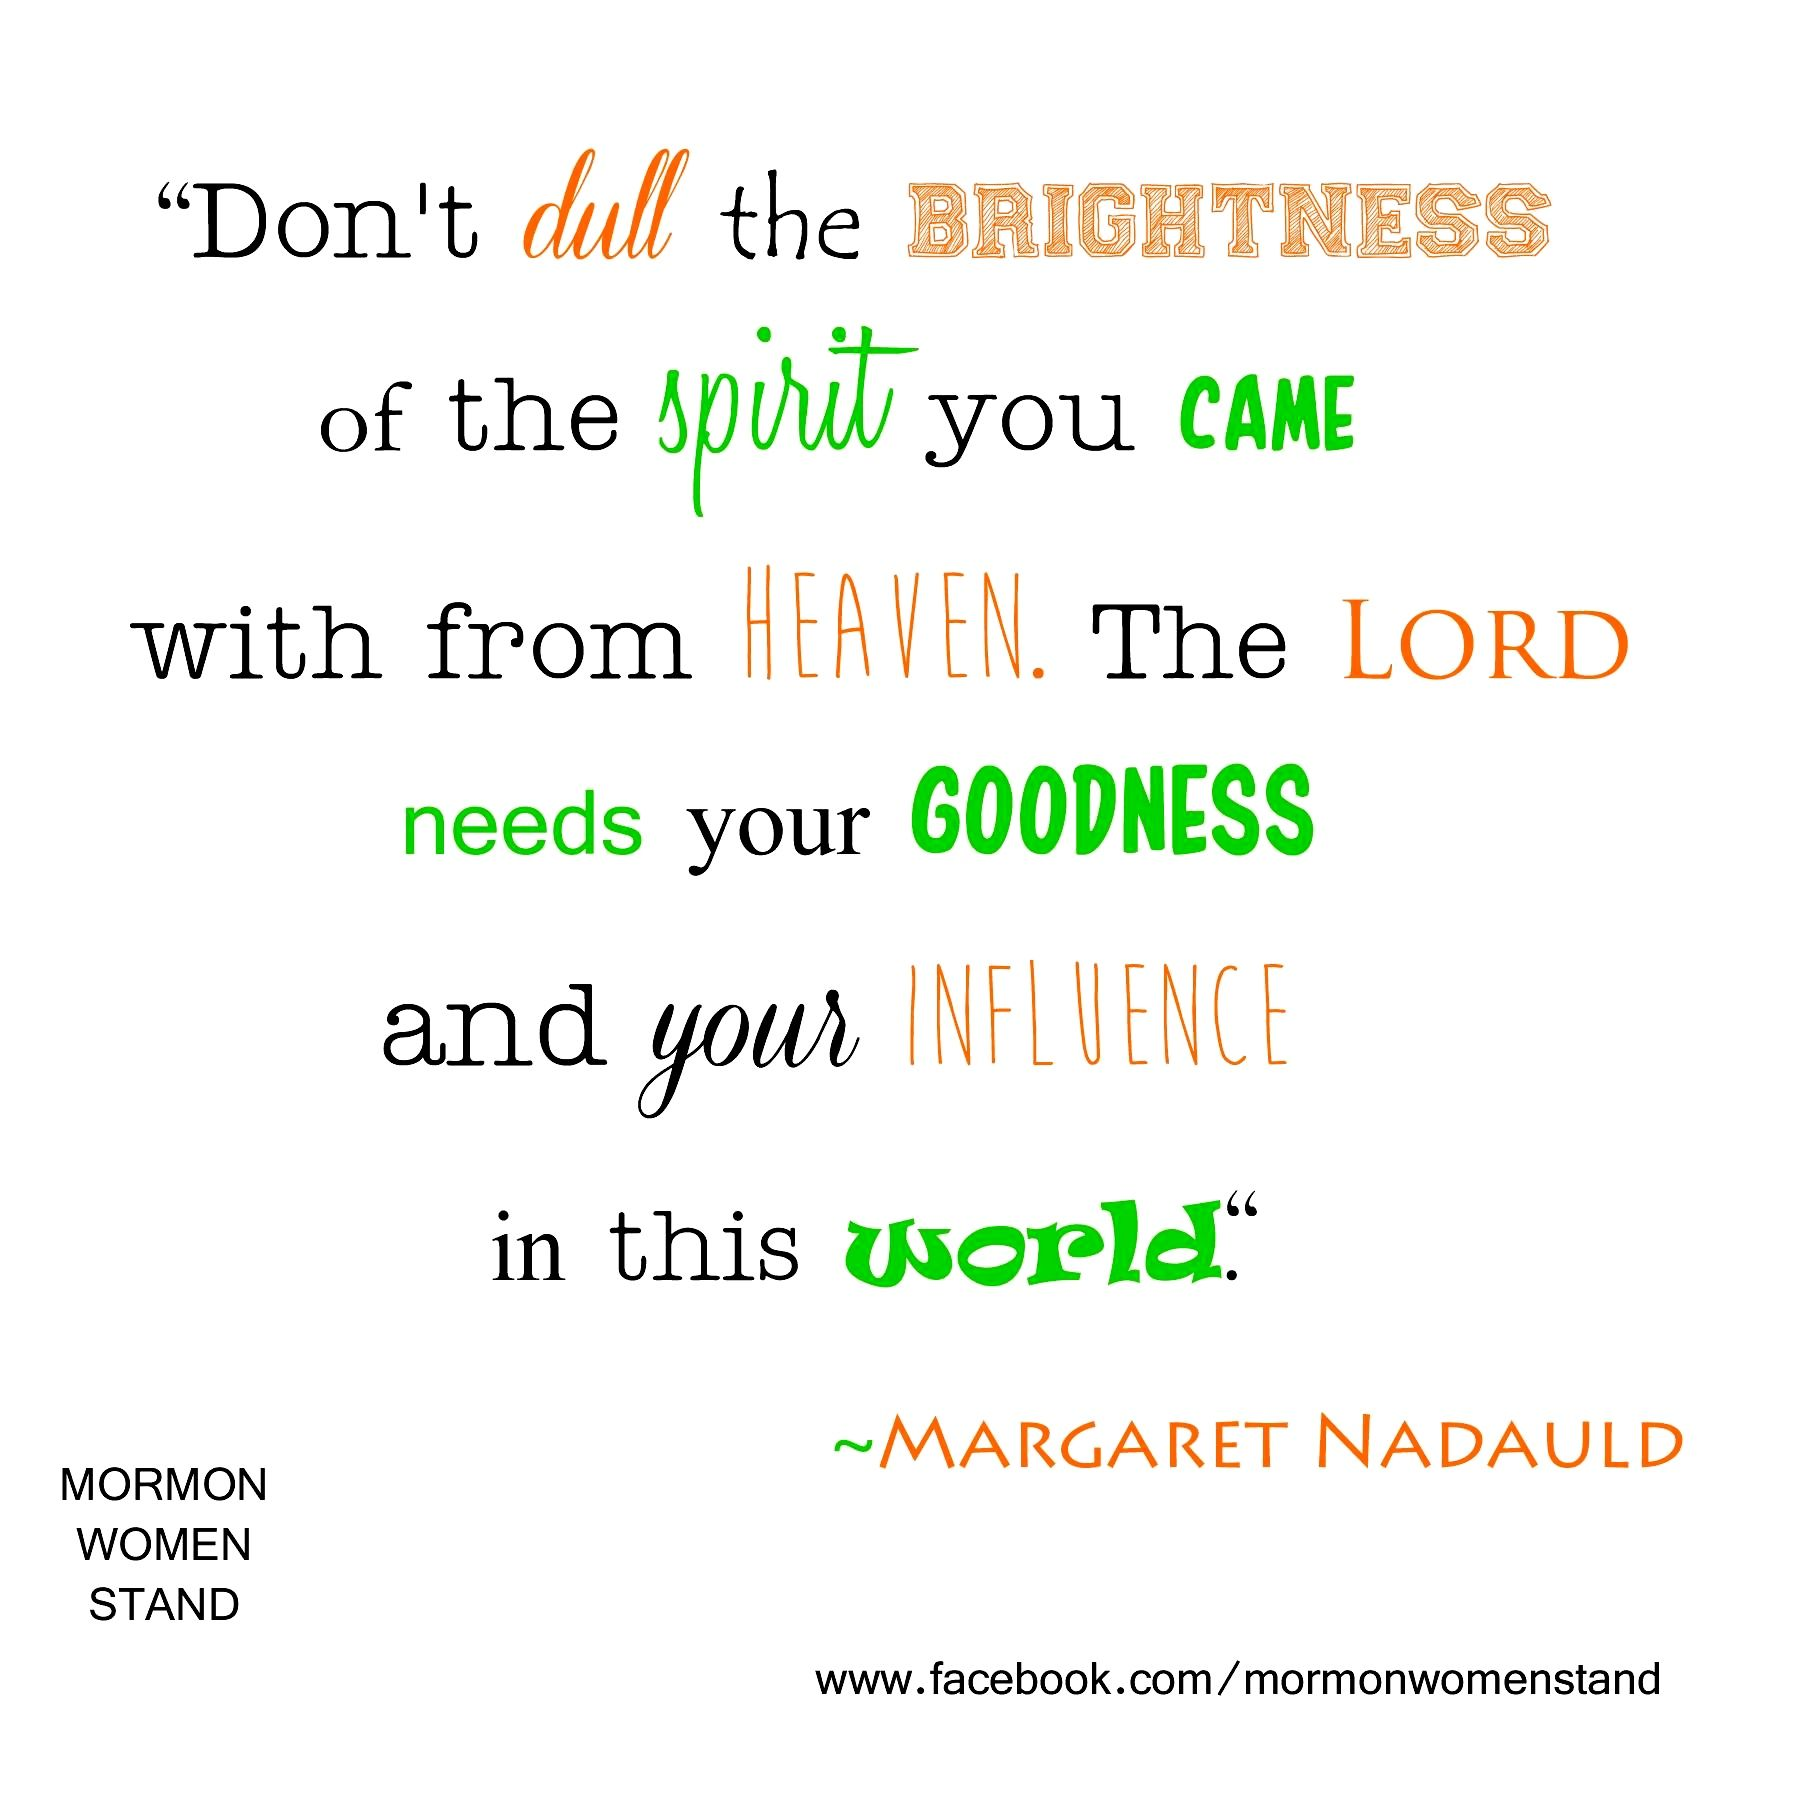 """Don't dull the brightness of the spirit you came with from heaven. The Lord needs your goodness and your influence in this world"". ~ Margaret Nadauld   #MormonWomenStand #LDSquotes #influence   Creator: Megan Ahroon Bradshaw"